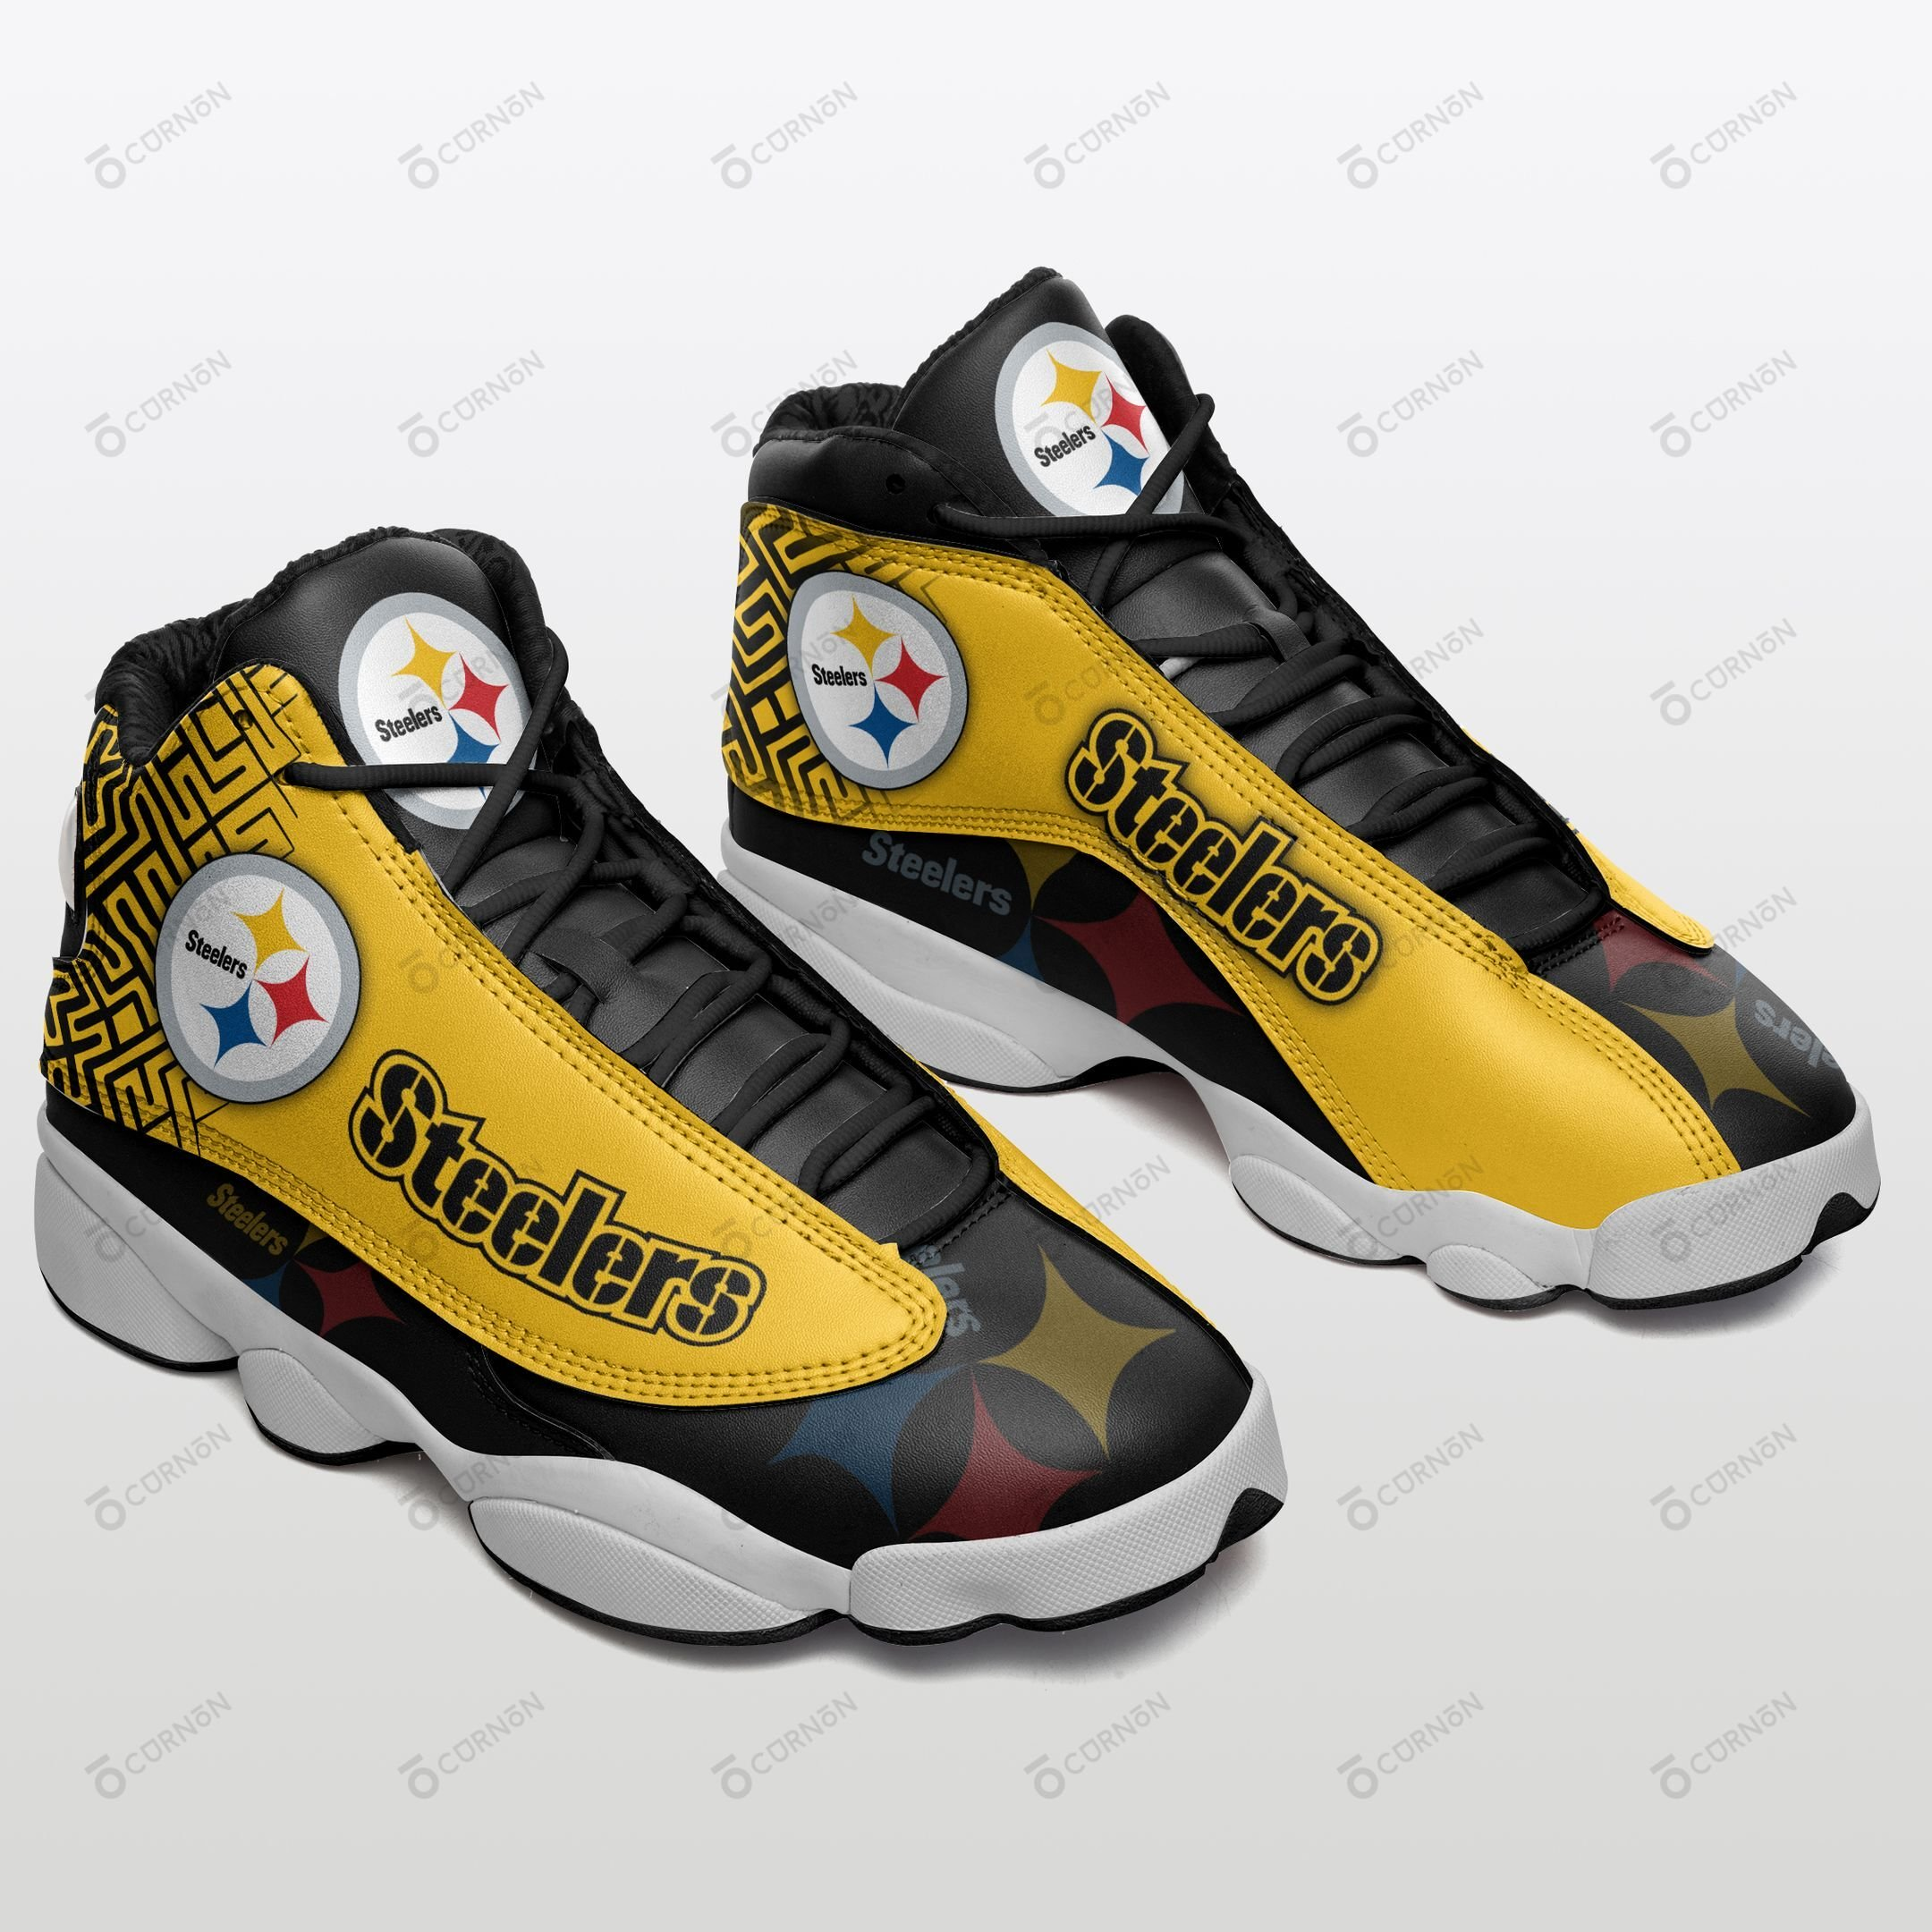 Pittsburgh Steelers Air JD13 Sneakers 253